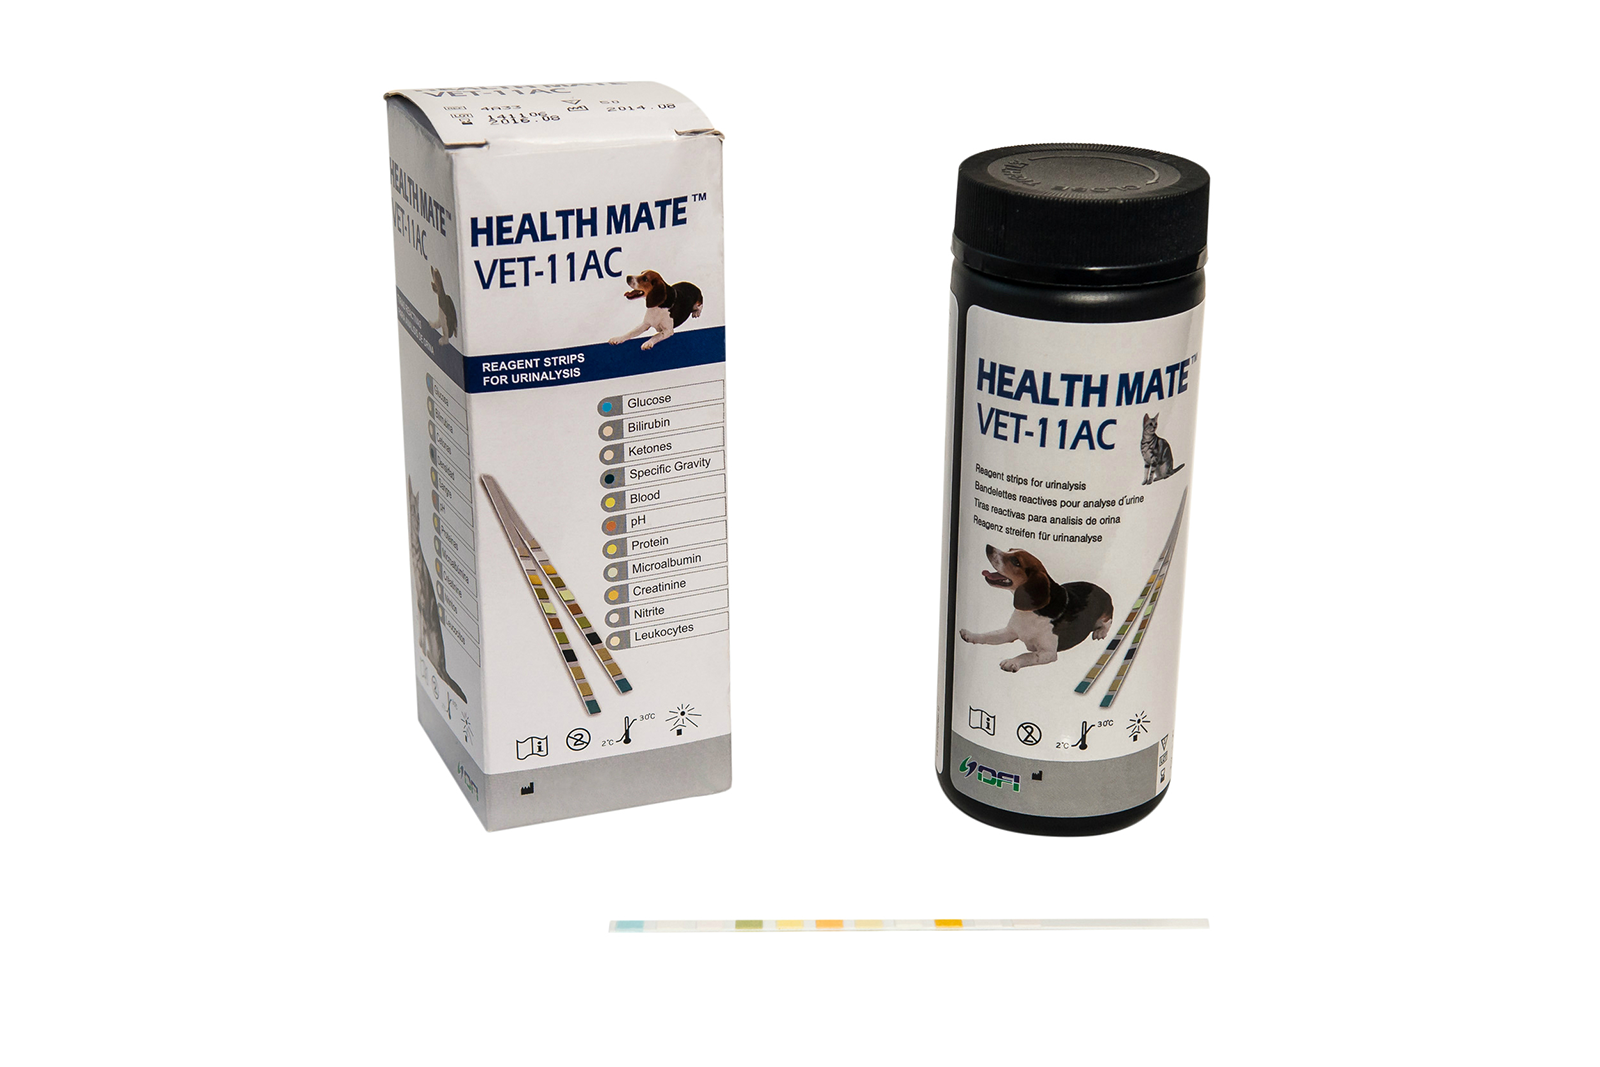 The Health Mate™ VET-11AC has Microalbumin and Creatinine tests for the diagnosis of early stage kidney problems in animals, with an ACR and PCR ratio table chart and interpretation supplied in the instructions, this can allow for frequent and quicker testing. 50 Test strips